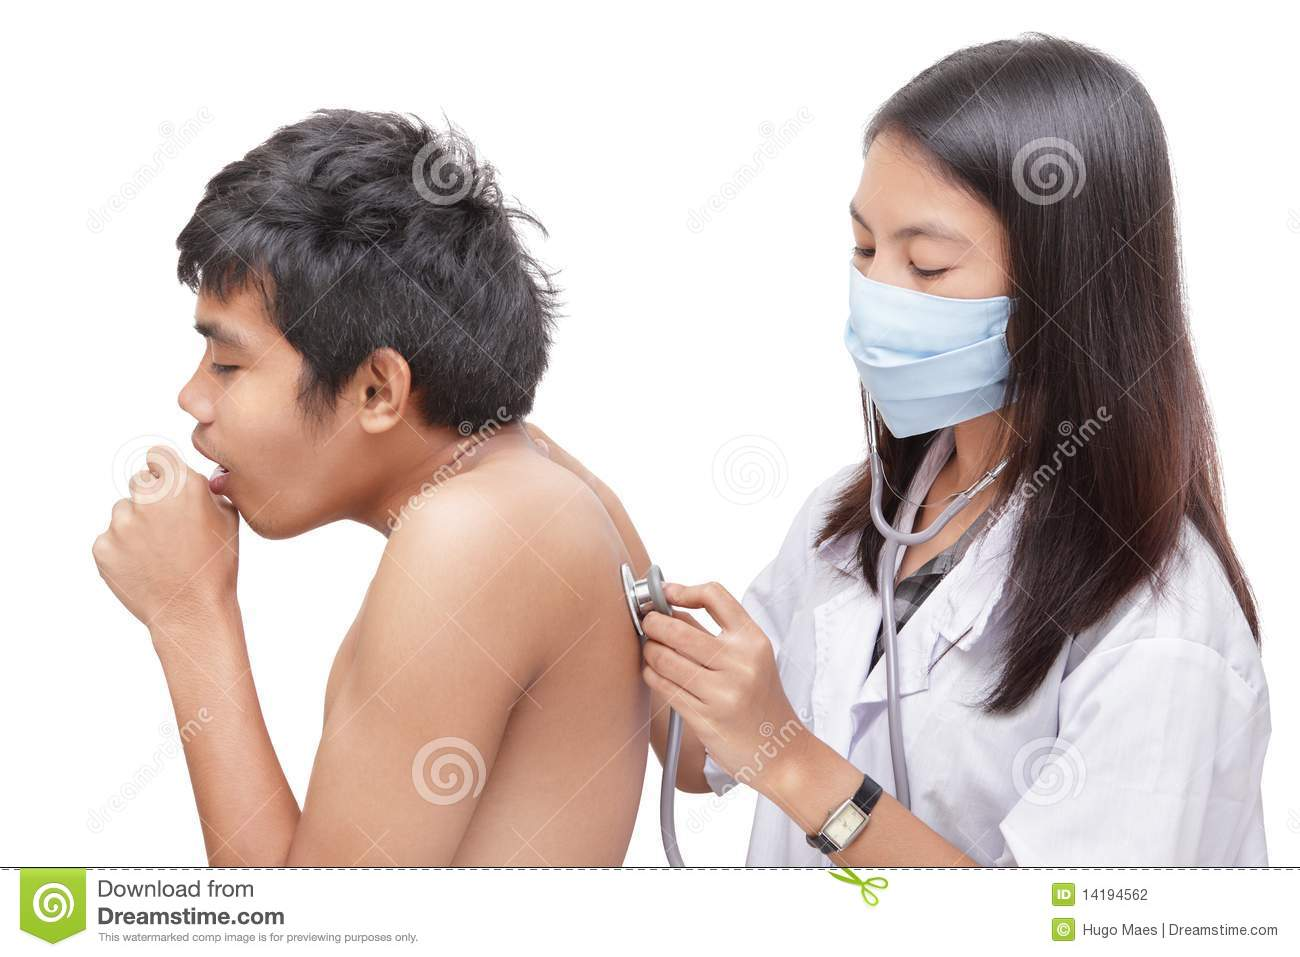 Stock Photography Doctor Diagnosing Coughing Patient Image14194562